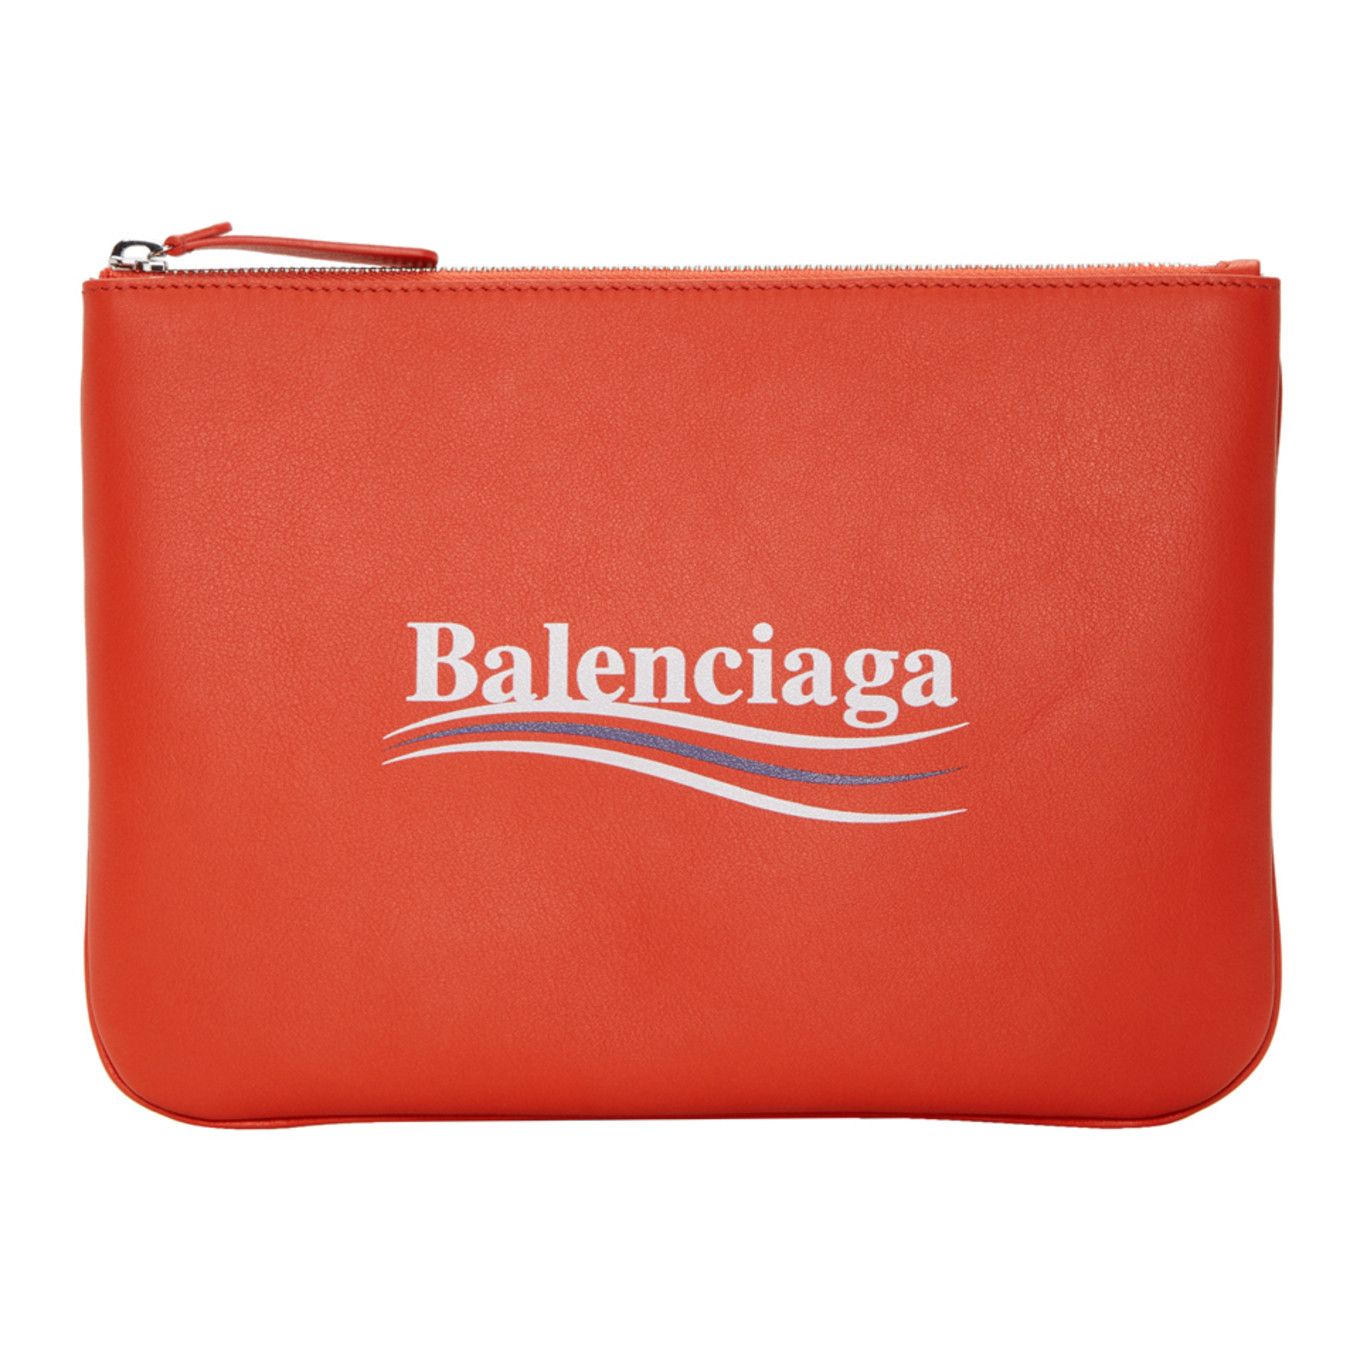 Red Everyday Campaign Pouch by Balenciaga